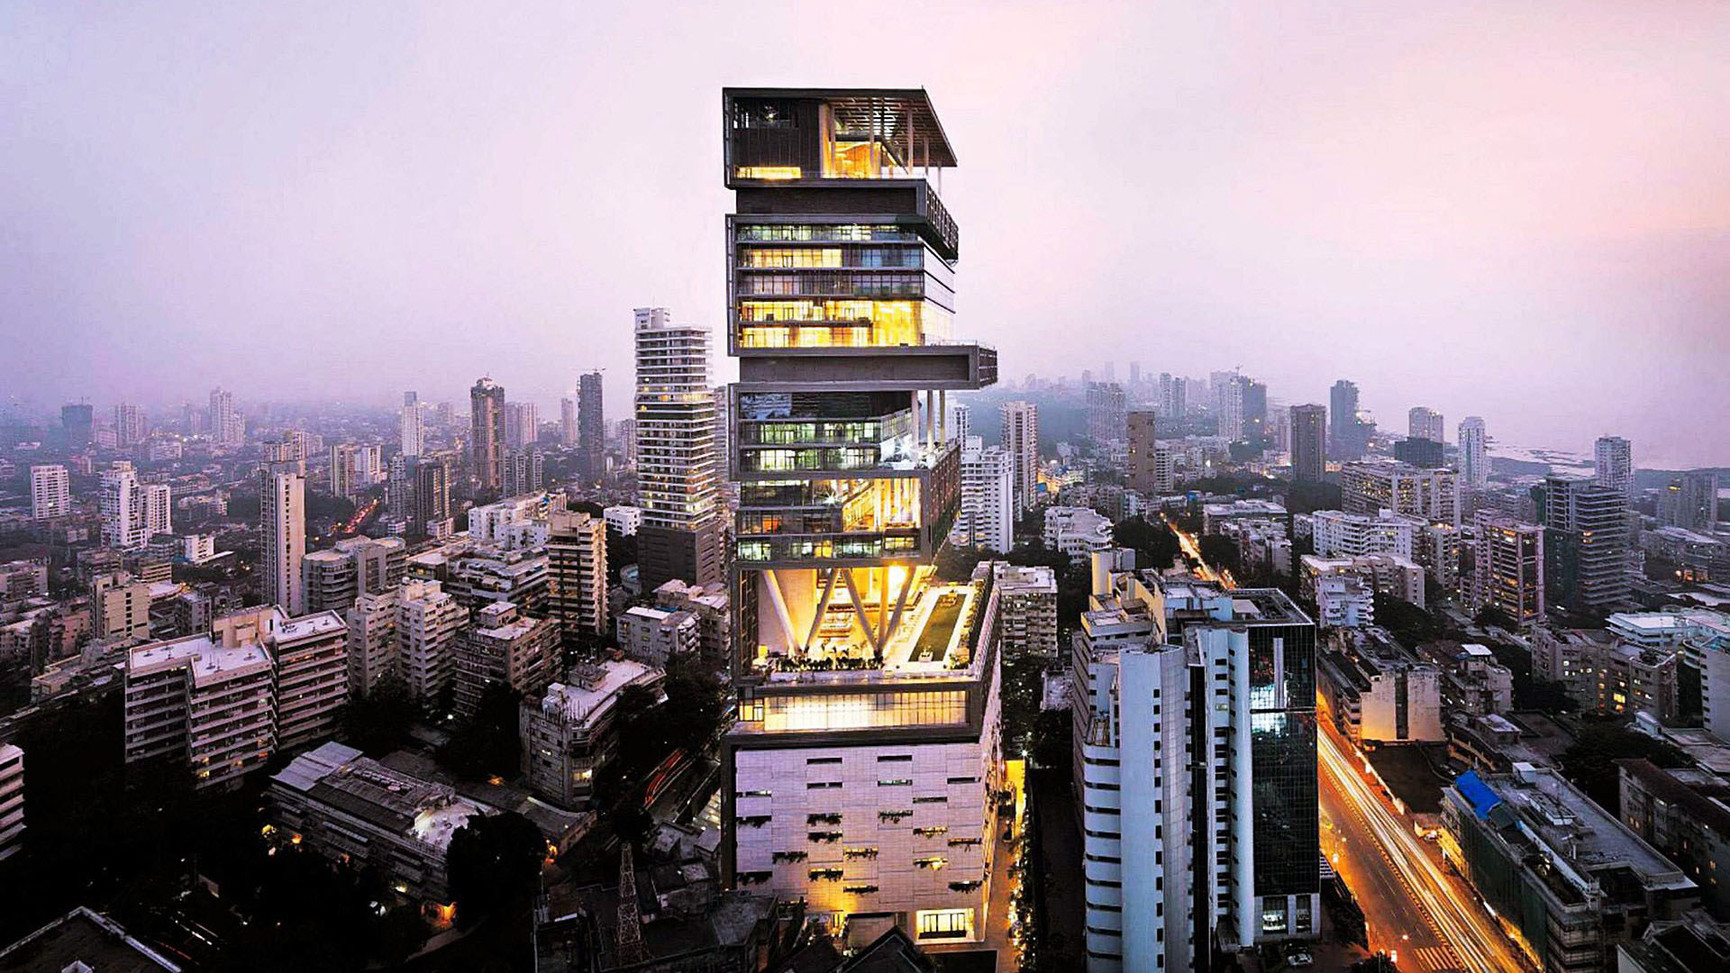 ANTILIA - MUMBAI, INDIA